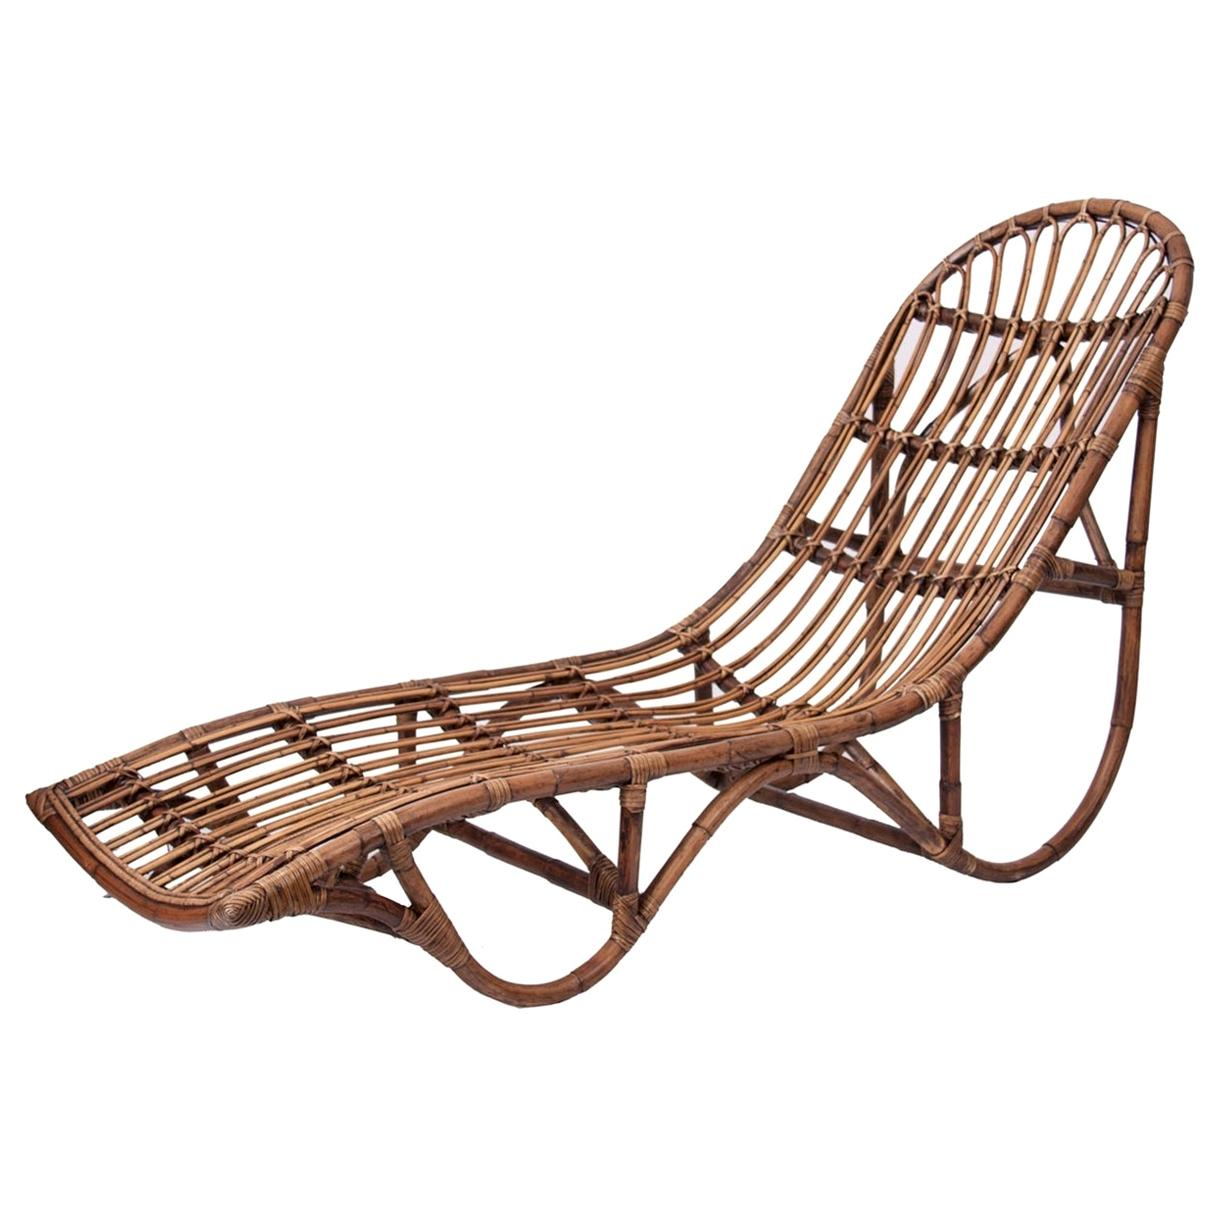 1960s Italian Design Style Rattan Daybed or Lounger Chaise Longue